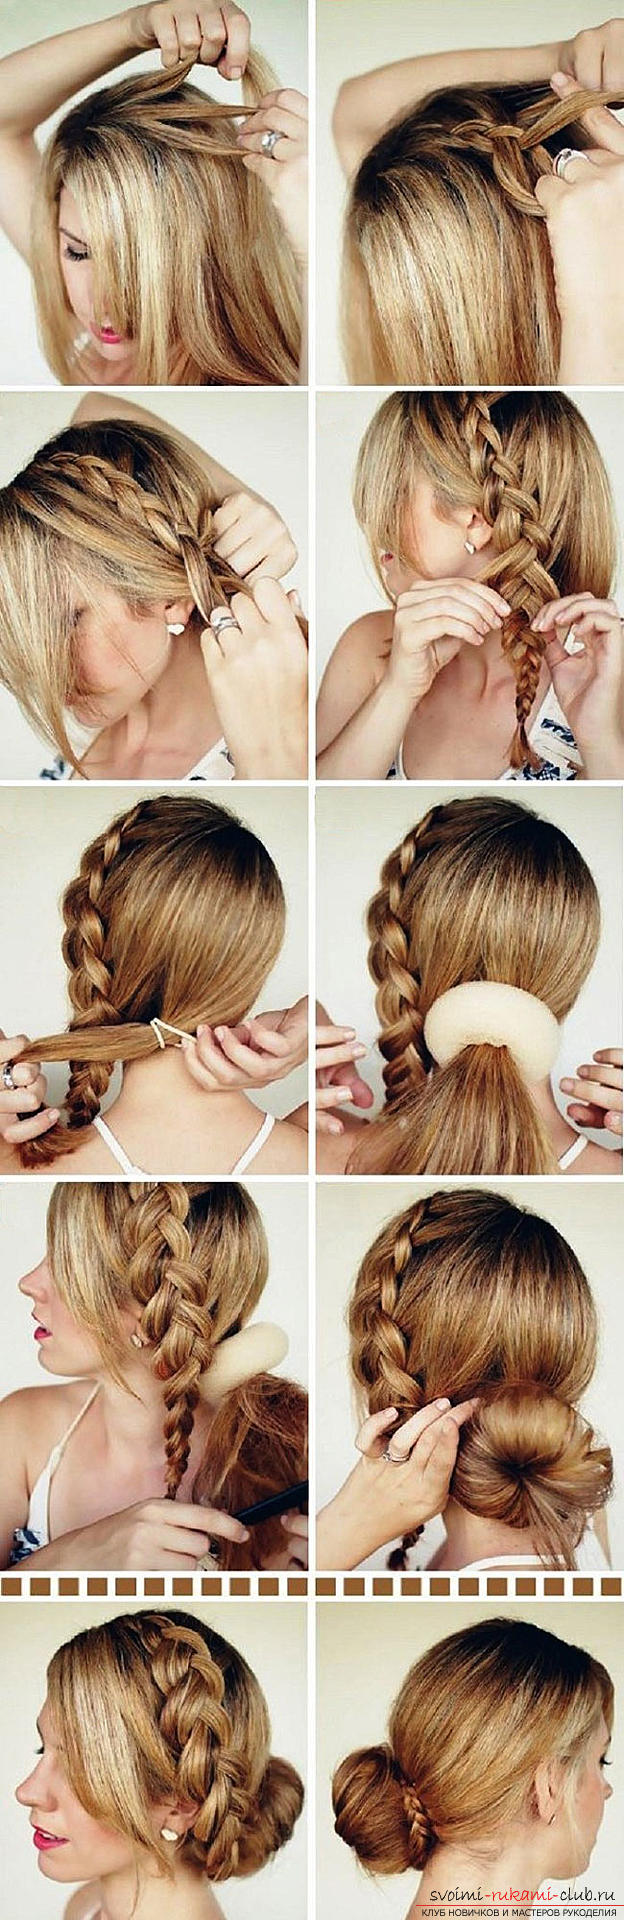 Step-by-step execution of hairstyles for girls of early and adolescence. Photo №5